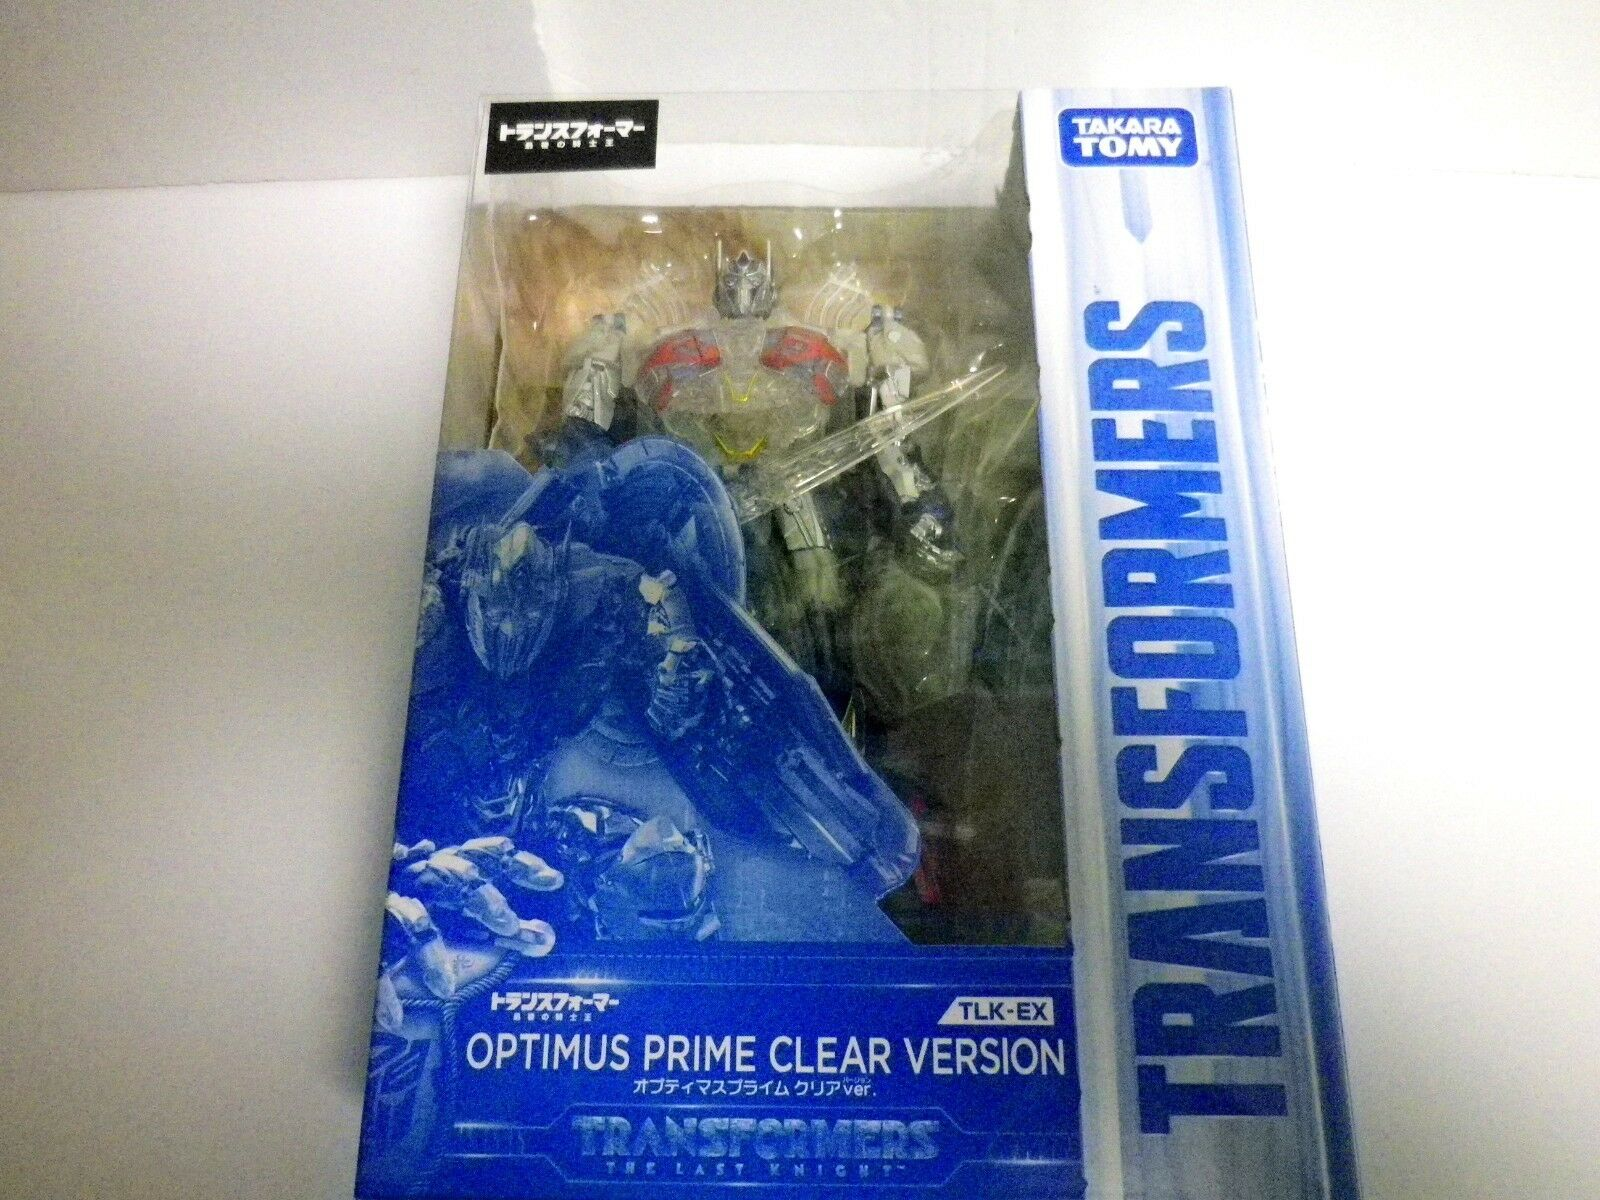 TRANSFORMERS TLK-EX OPTIMUS PRIME CLEAR VERSION limited  new